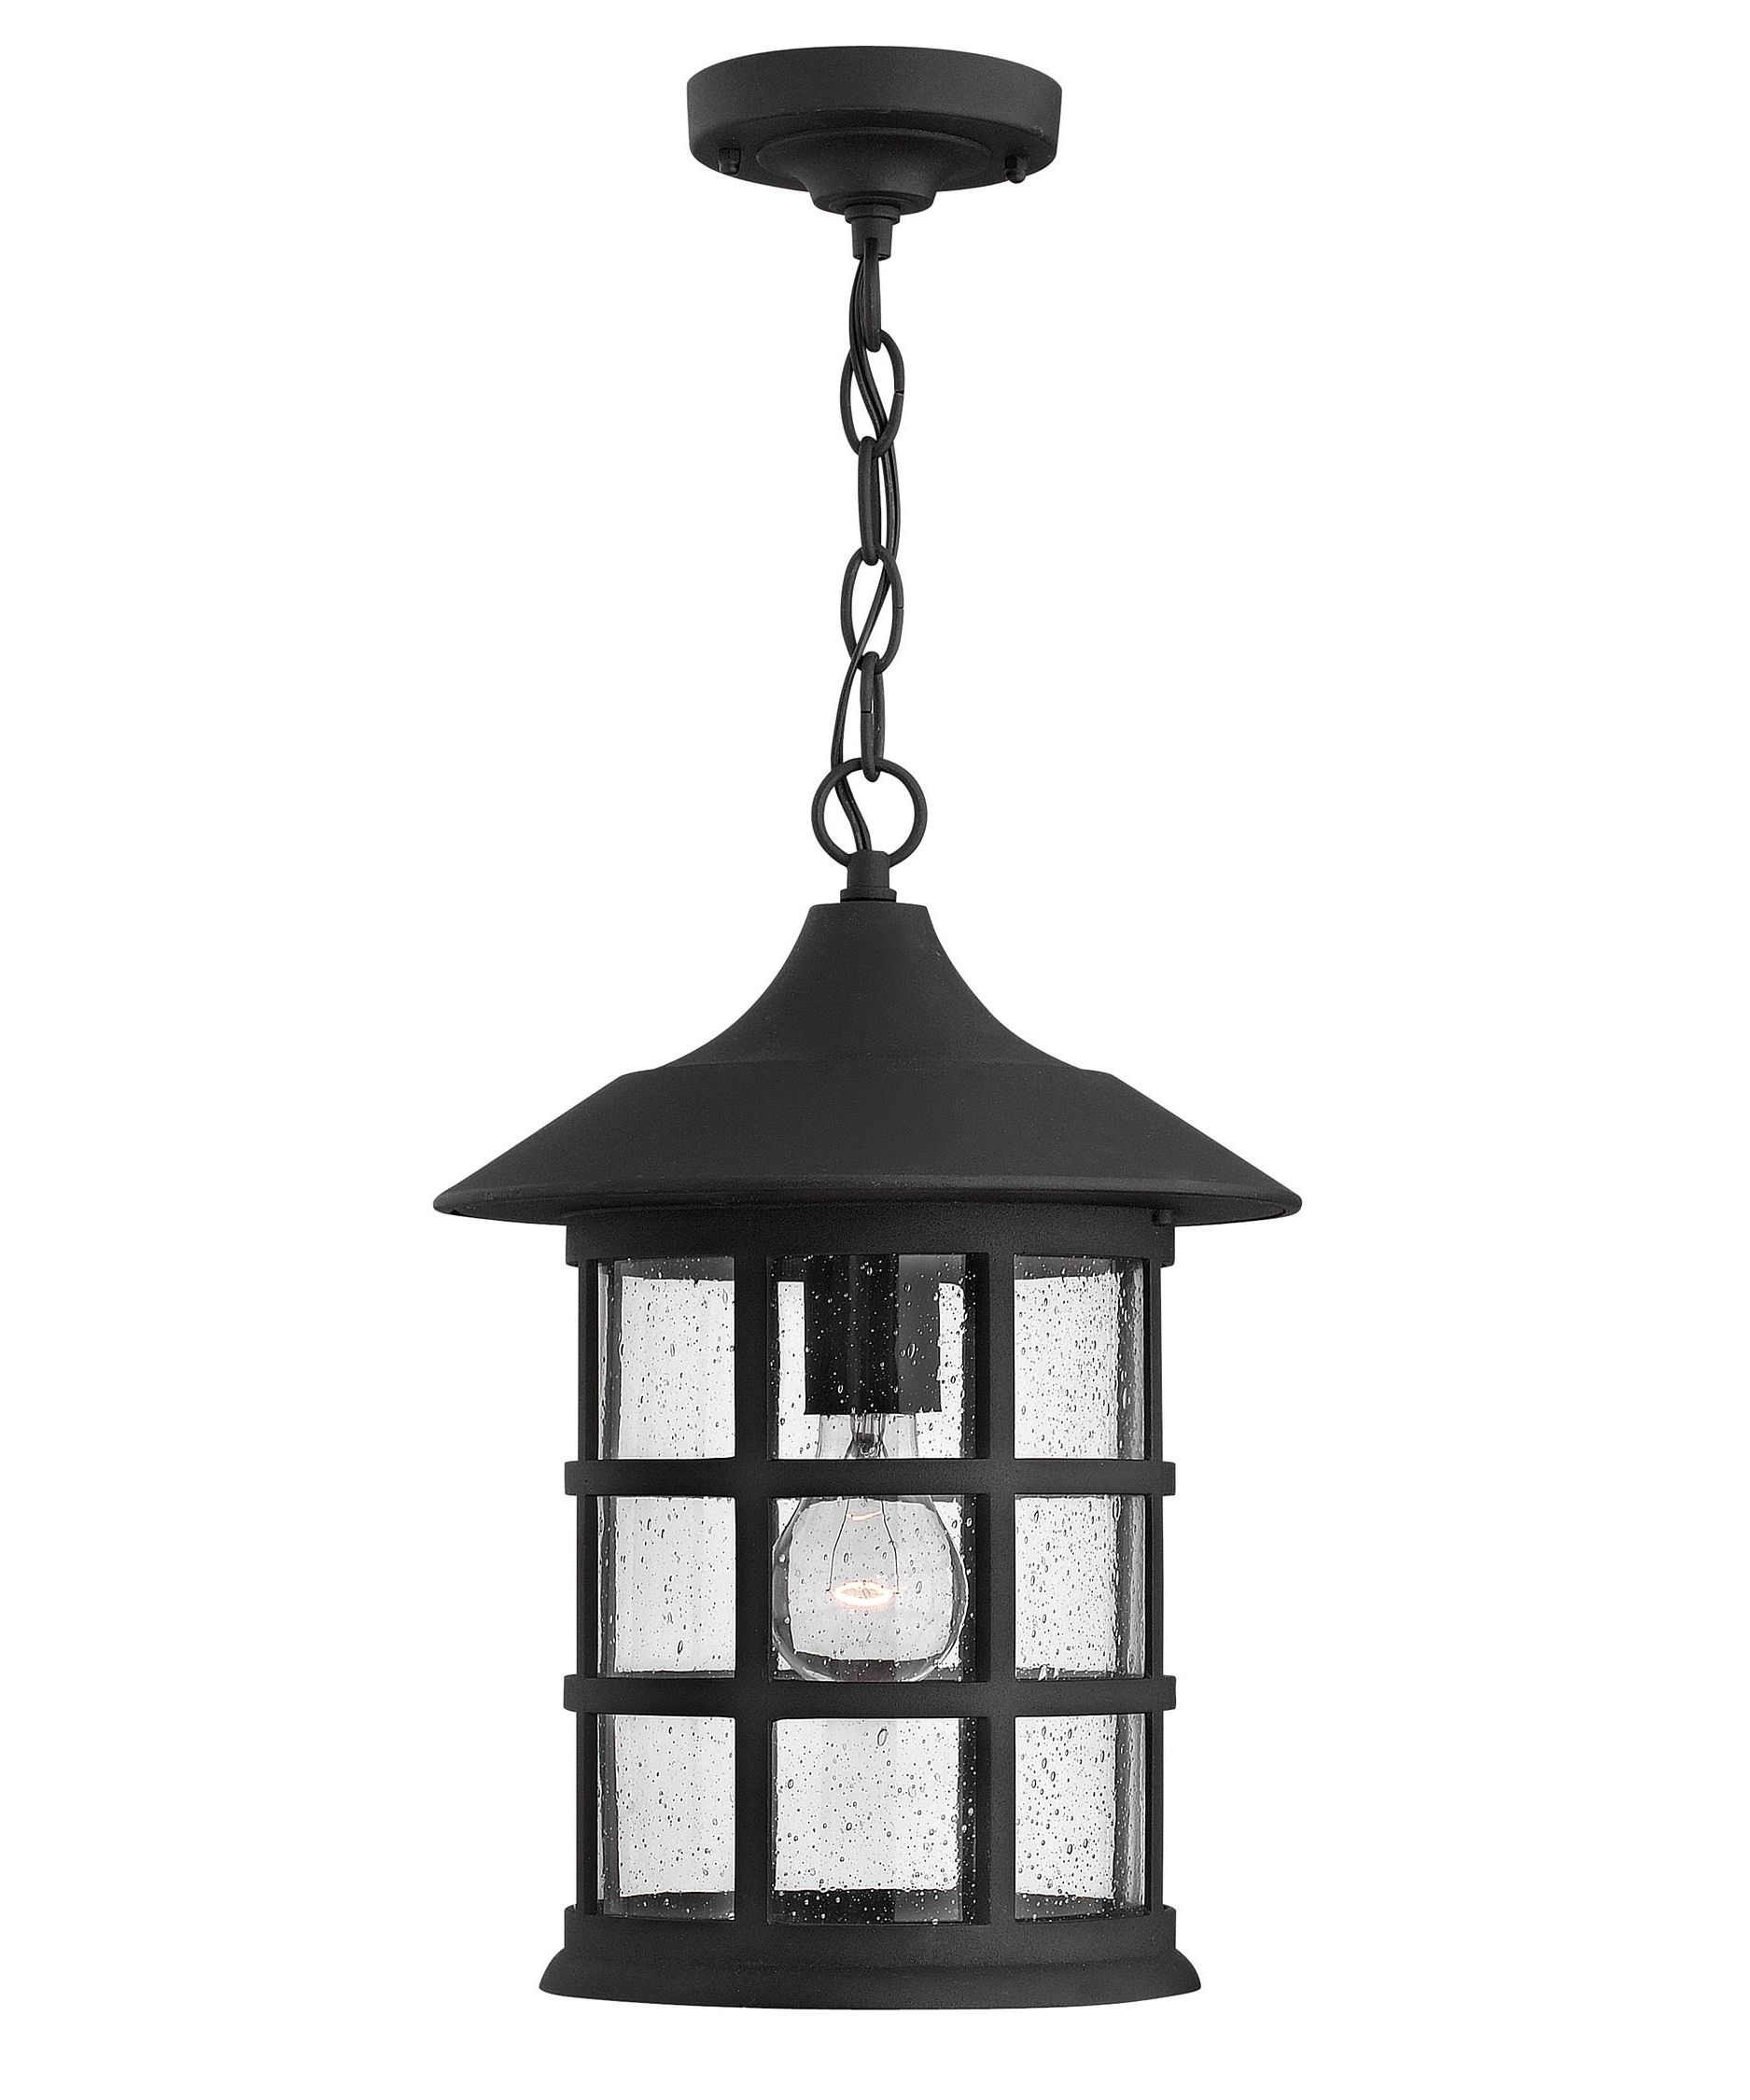 Hinkley Lighting 1802 Freeport 10 Inch Wide 1 Light Outdoor Hanging Within Latest Hanging Porch Hinkley Lighting (View 9 of 20)